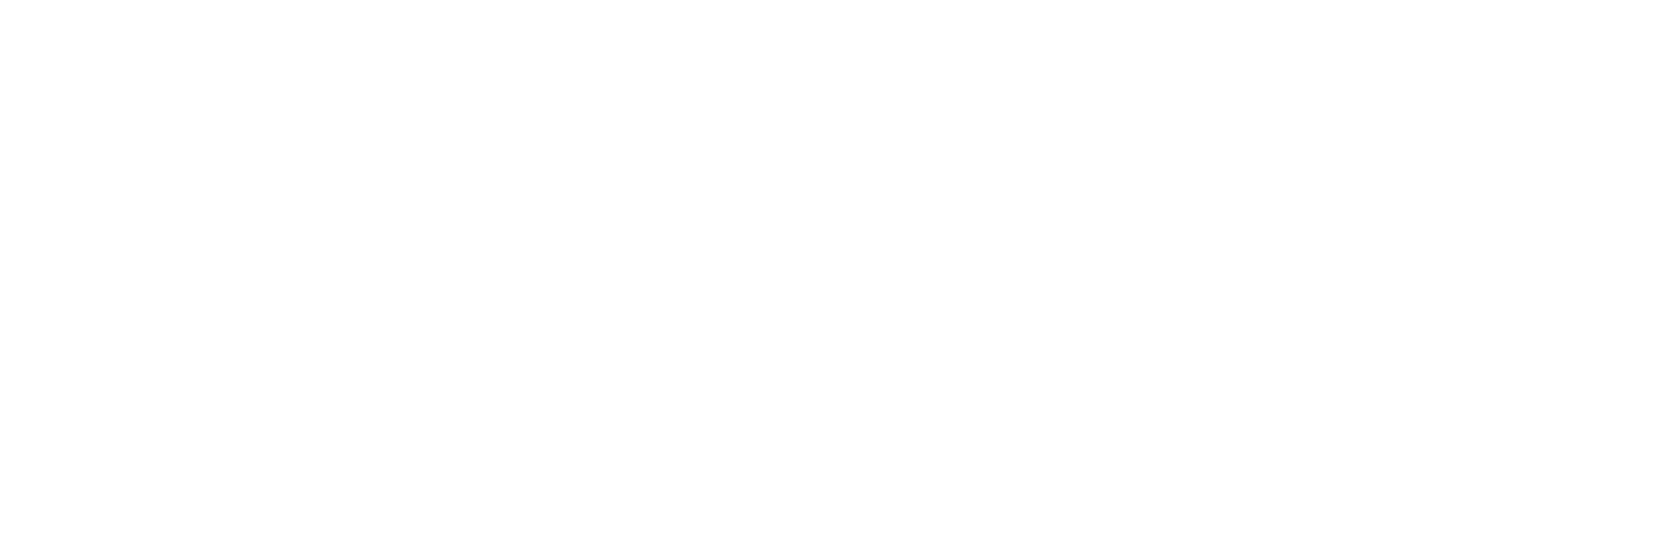 drinks-banner.png